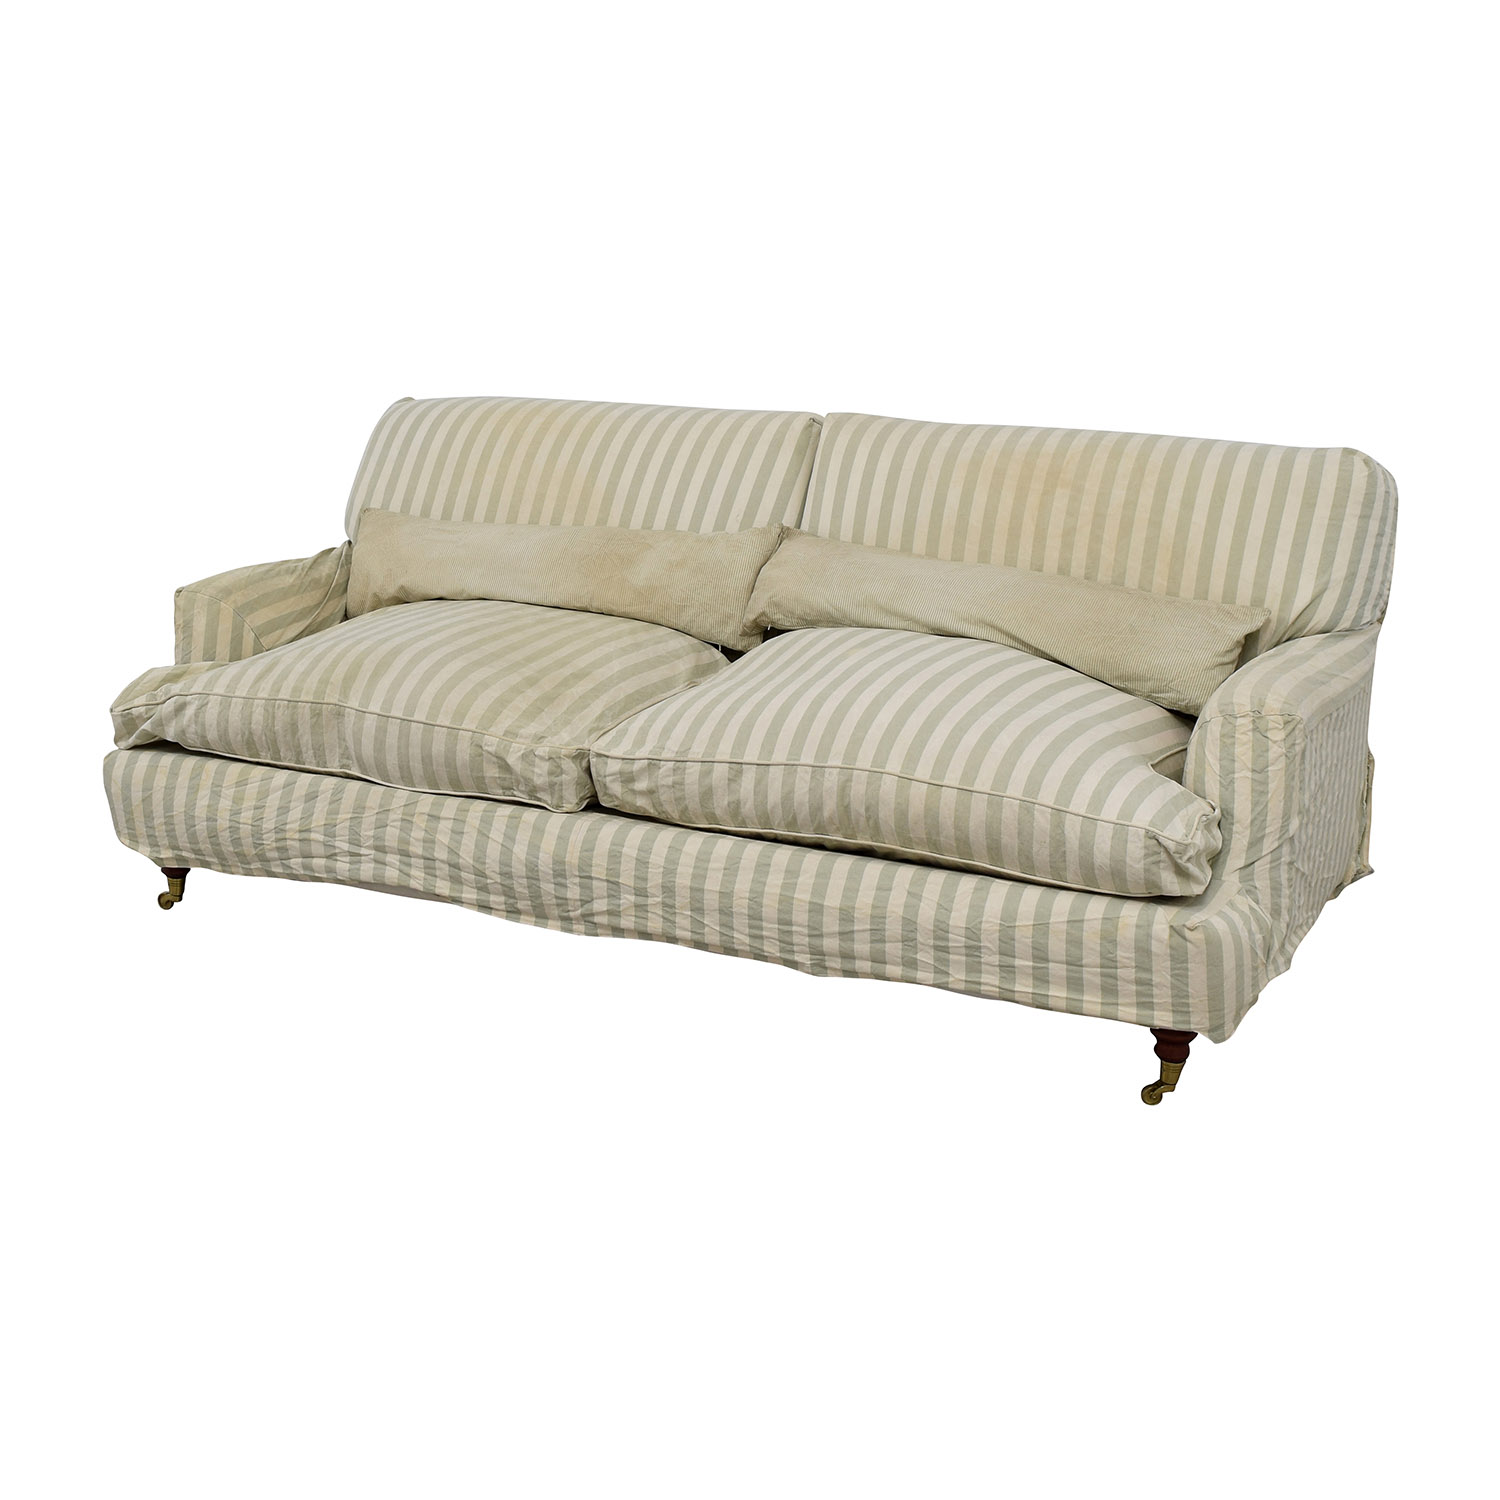 Used Sofas Online: Green And White Striped English Roll-arm Sofa